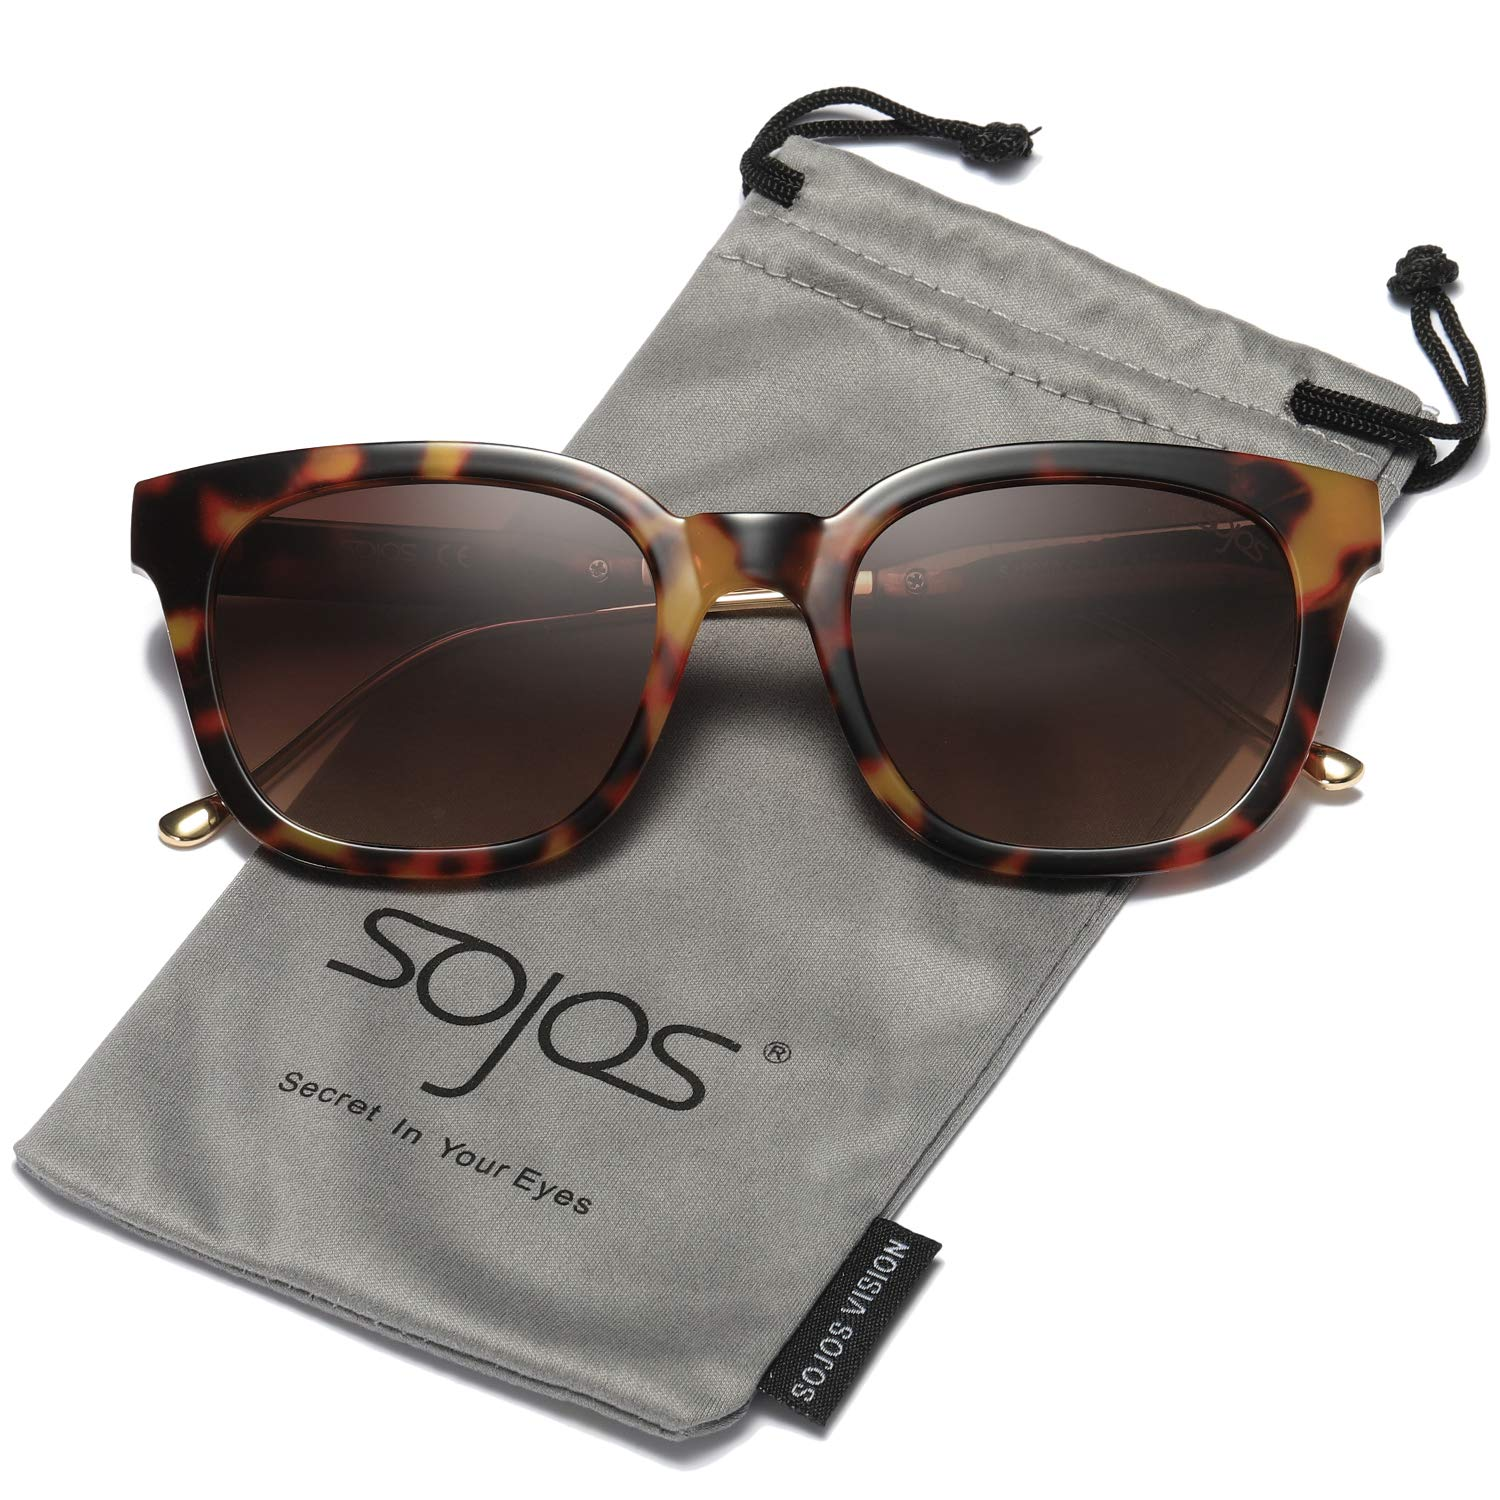 SOJOS Vintage Polarized Sunlgasses Womens Mens Square Frame Mirrored Lens SJ2050 SJ2027 SJ2029 with Tortoise Frame/Brown Polarized Lens/ by SOJOS